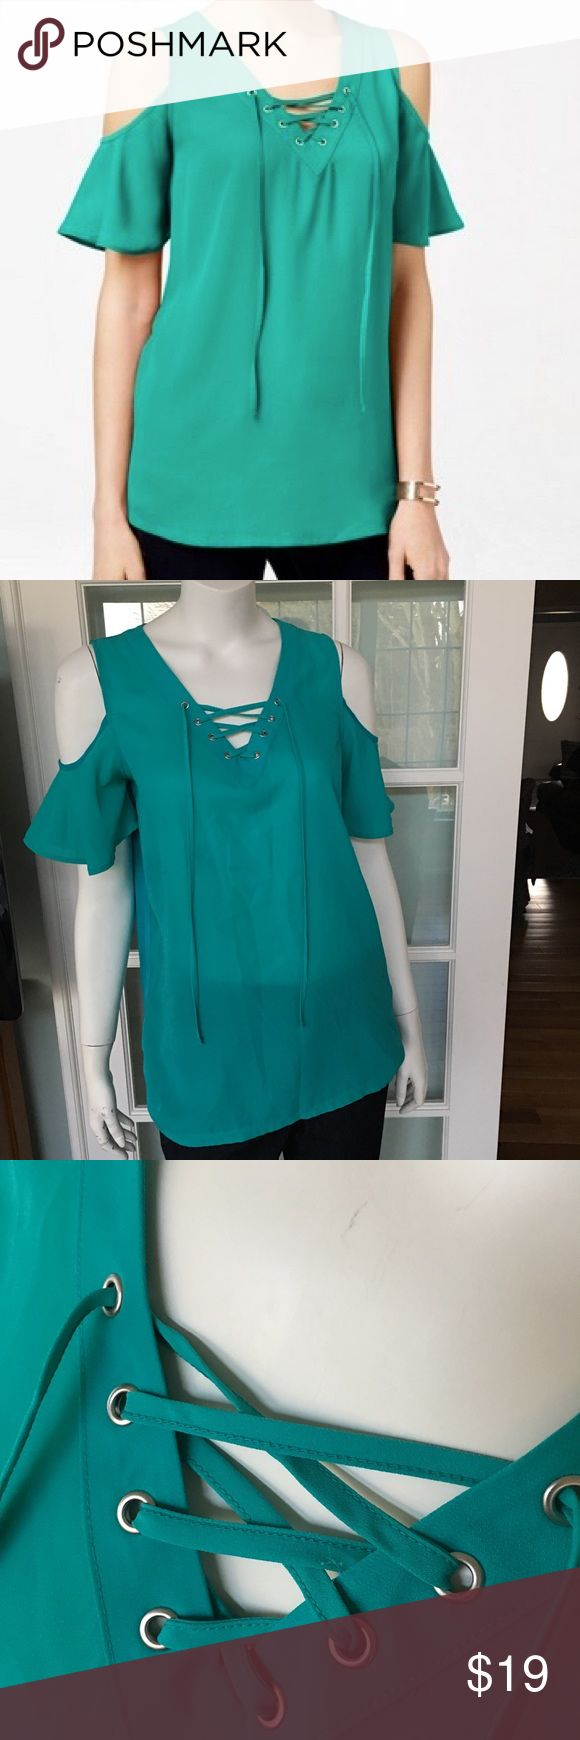 NEW INC cold shoulder teal green short sleeve top New with tags. Polyester front. Knit back. Modeled on a size 6 mannequin. Come visit my closet for great bundling items! All new with tags!  Size medium. Retail $59.50. INC International Concepts Tops Blouses